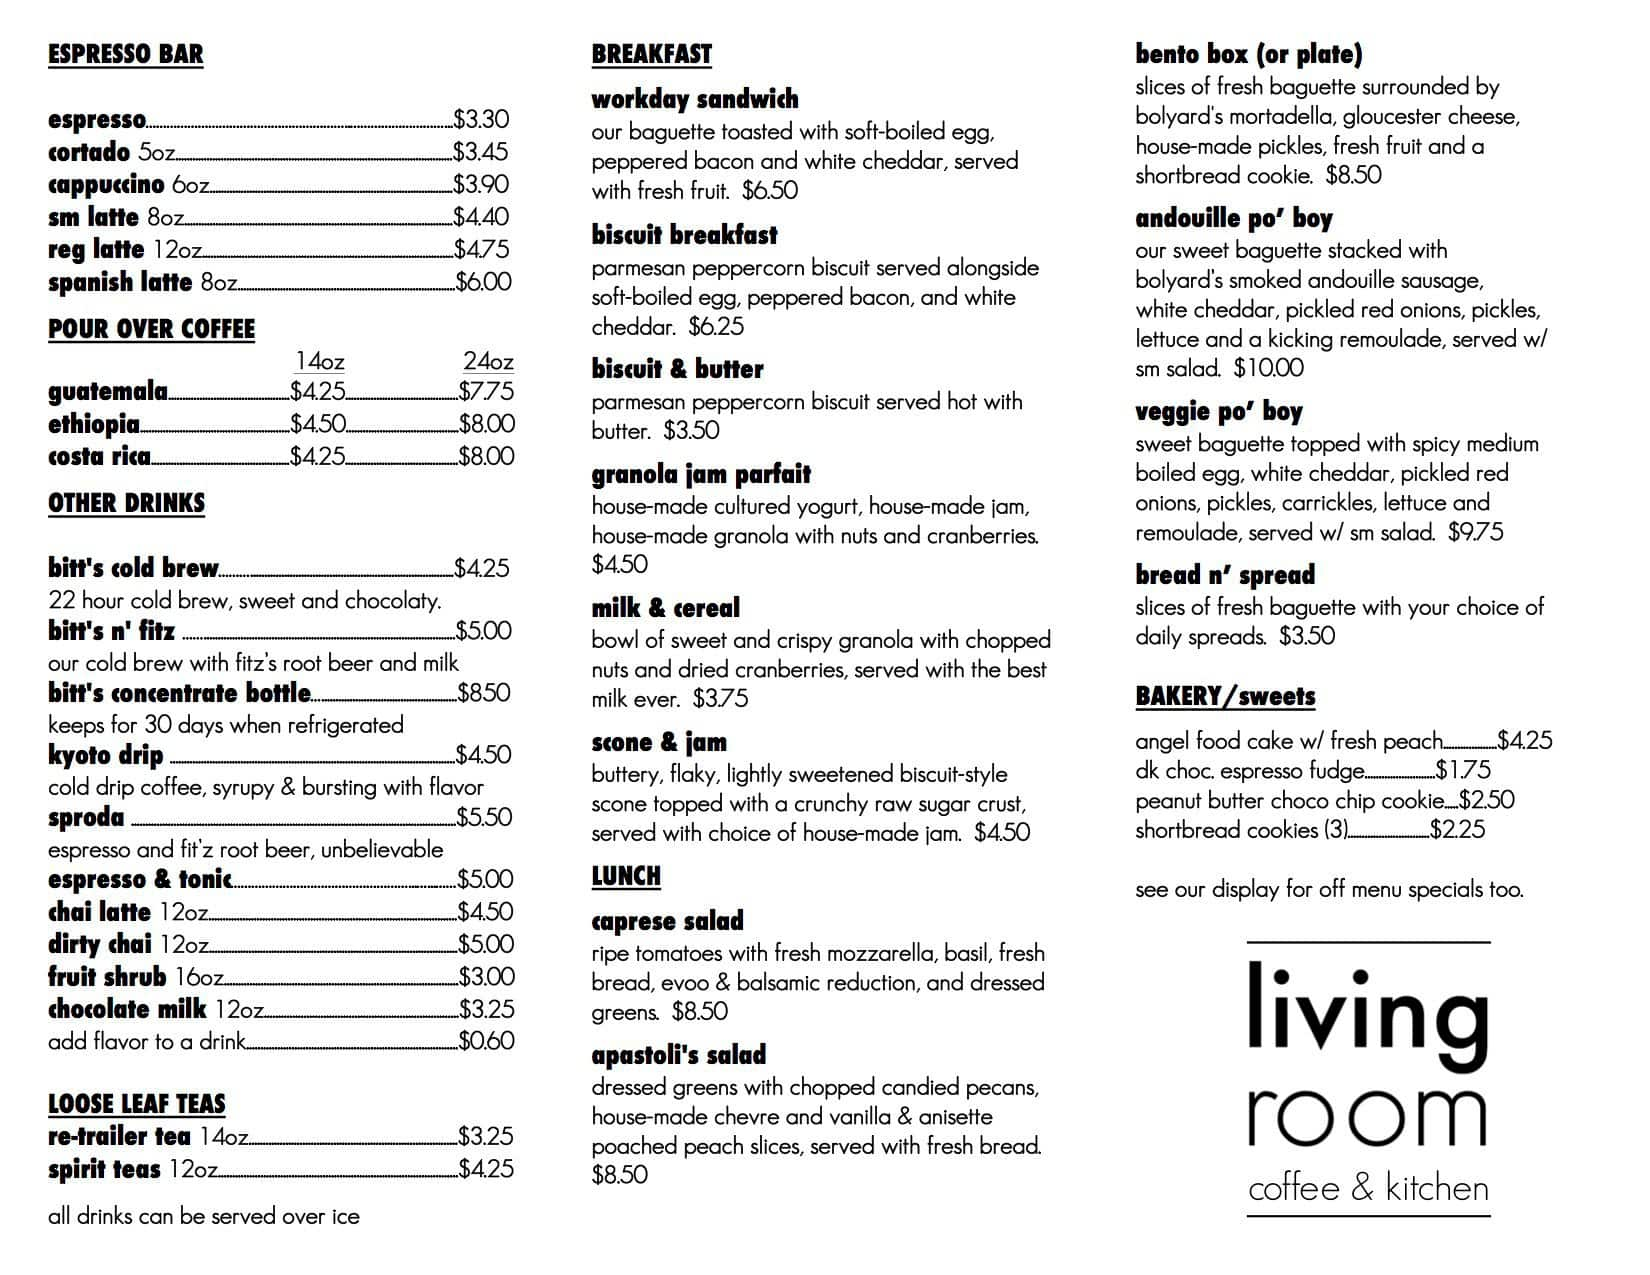 Living room menu menu for living room maplewood st - Living room cafe menu philadelphia ...